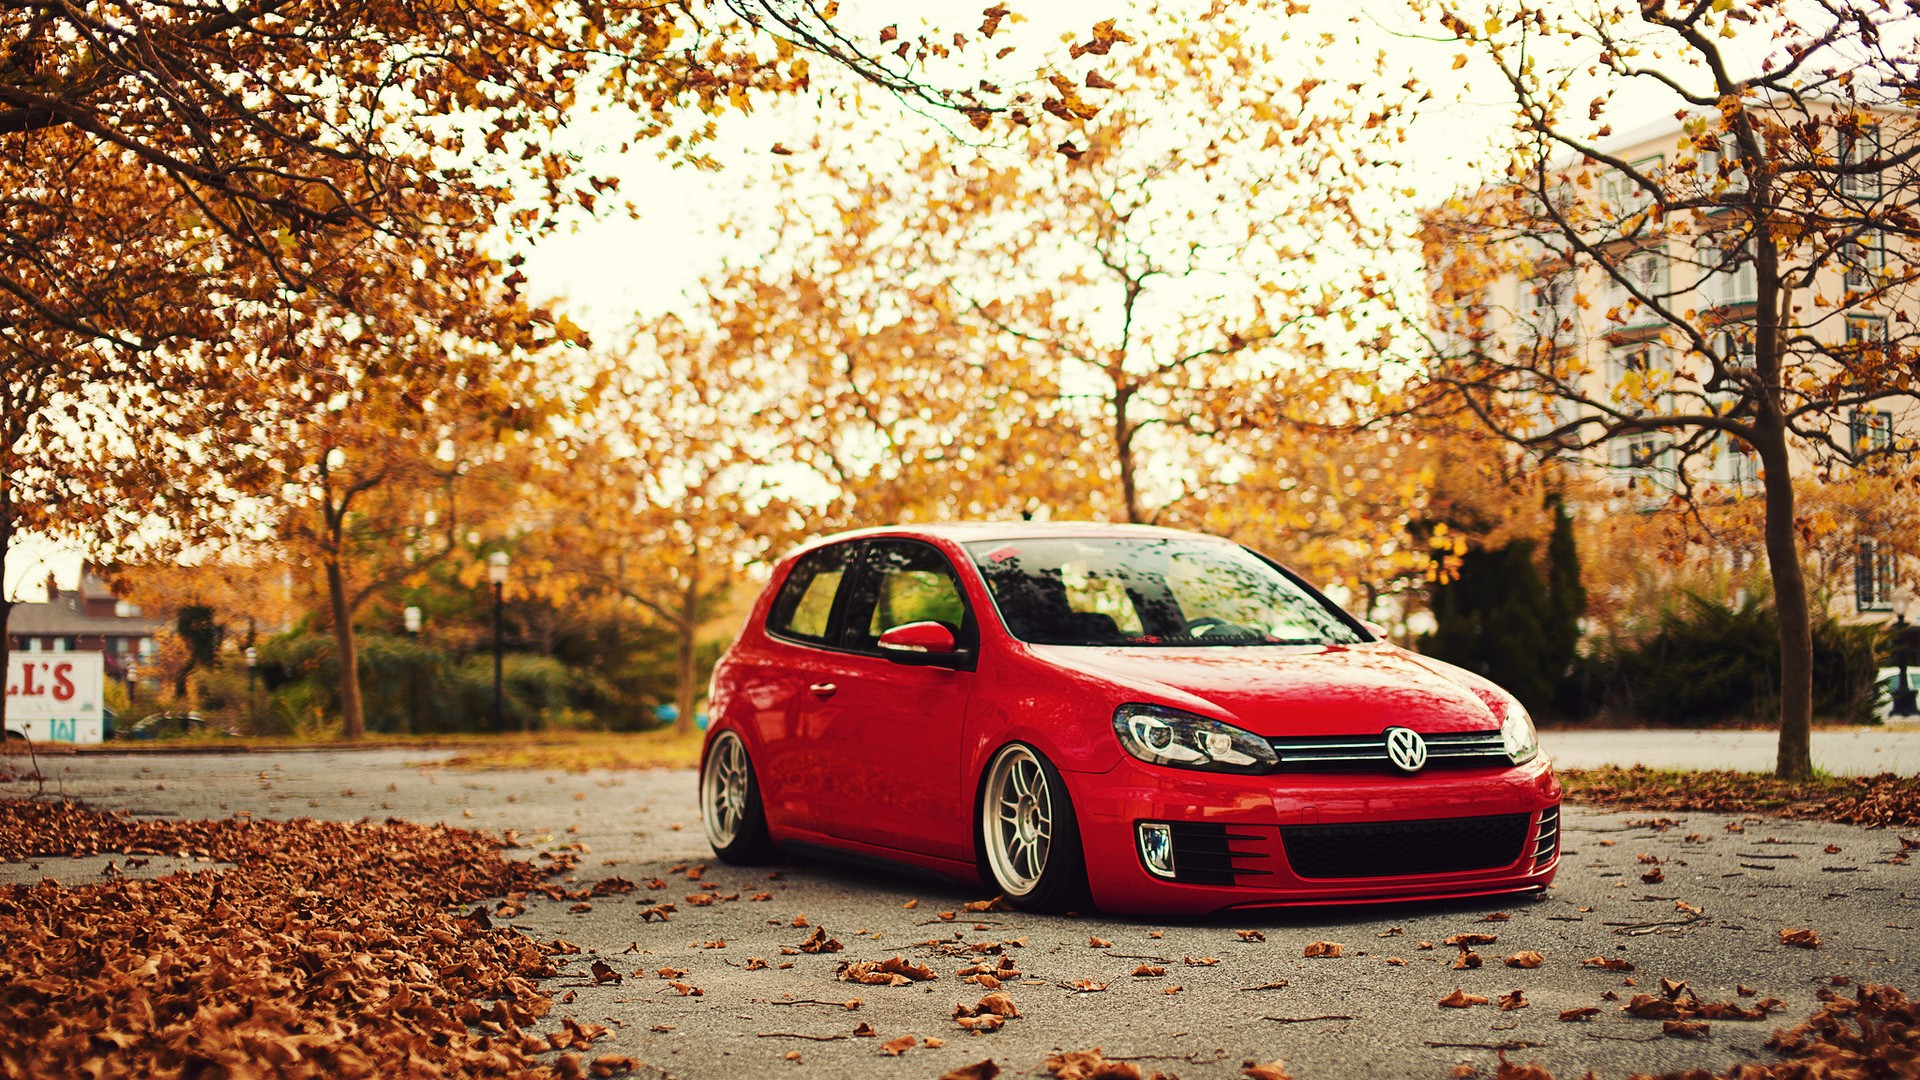 Golf GTI Wallpaper Background